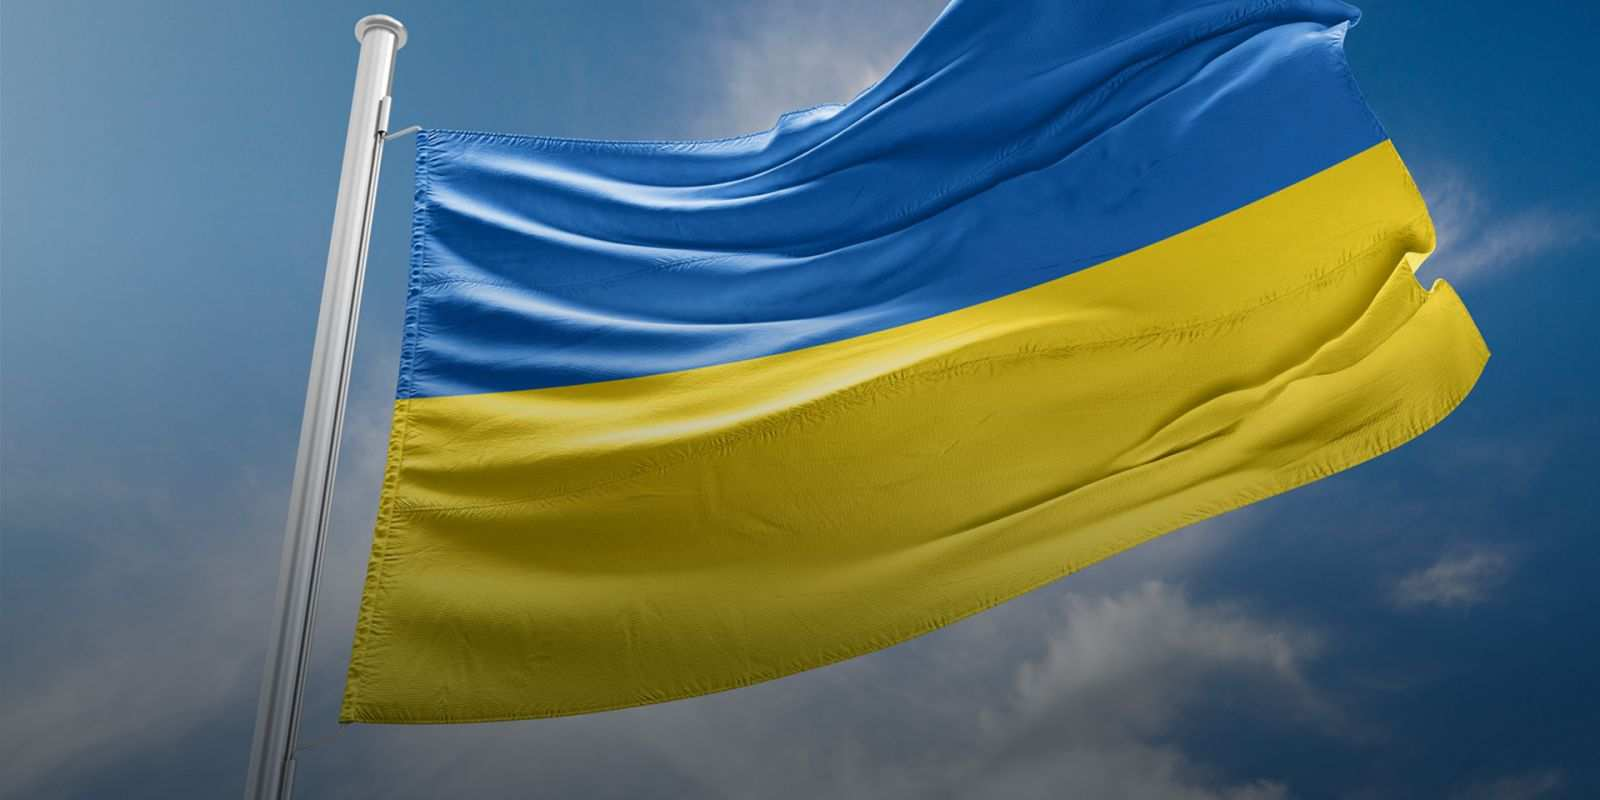 Ukraine's Economy to Almost Completely Recover from the Crisis in 2021